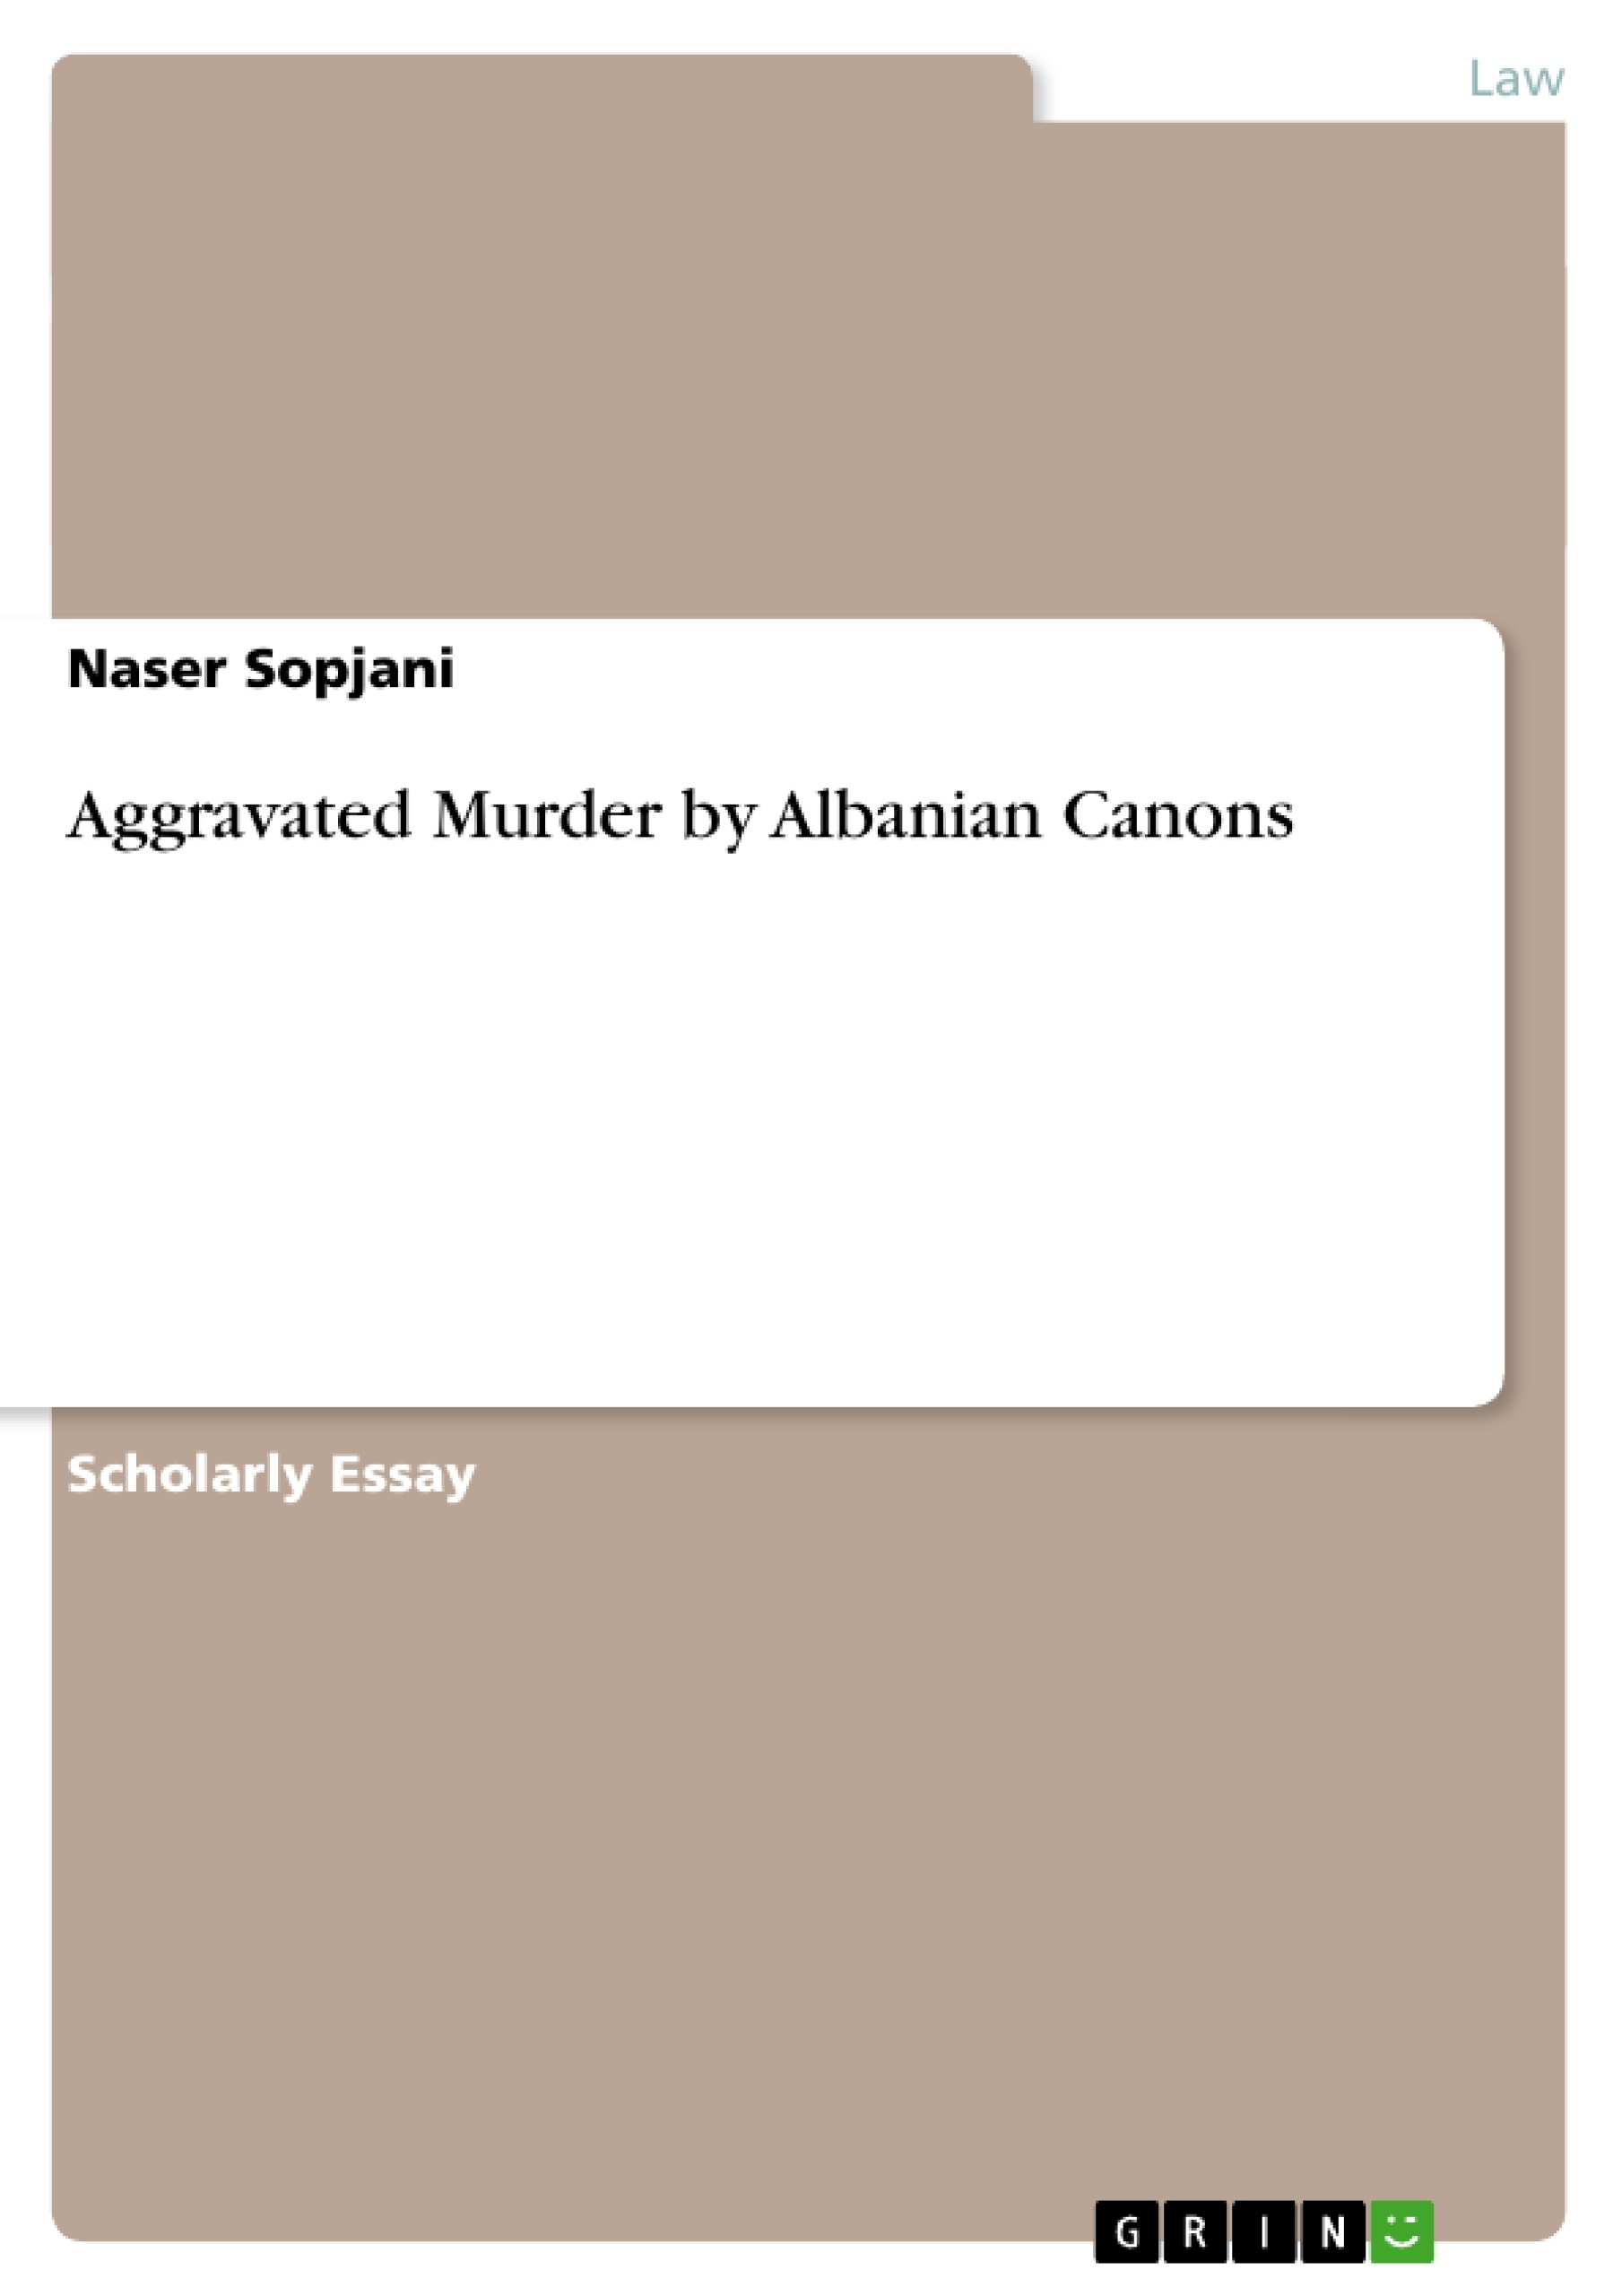 Title: Aggravated Murder by Albanian Canons